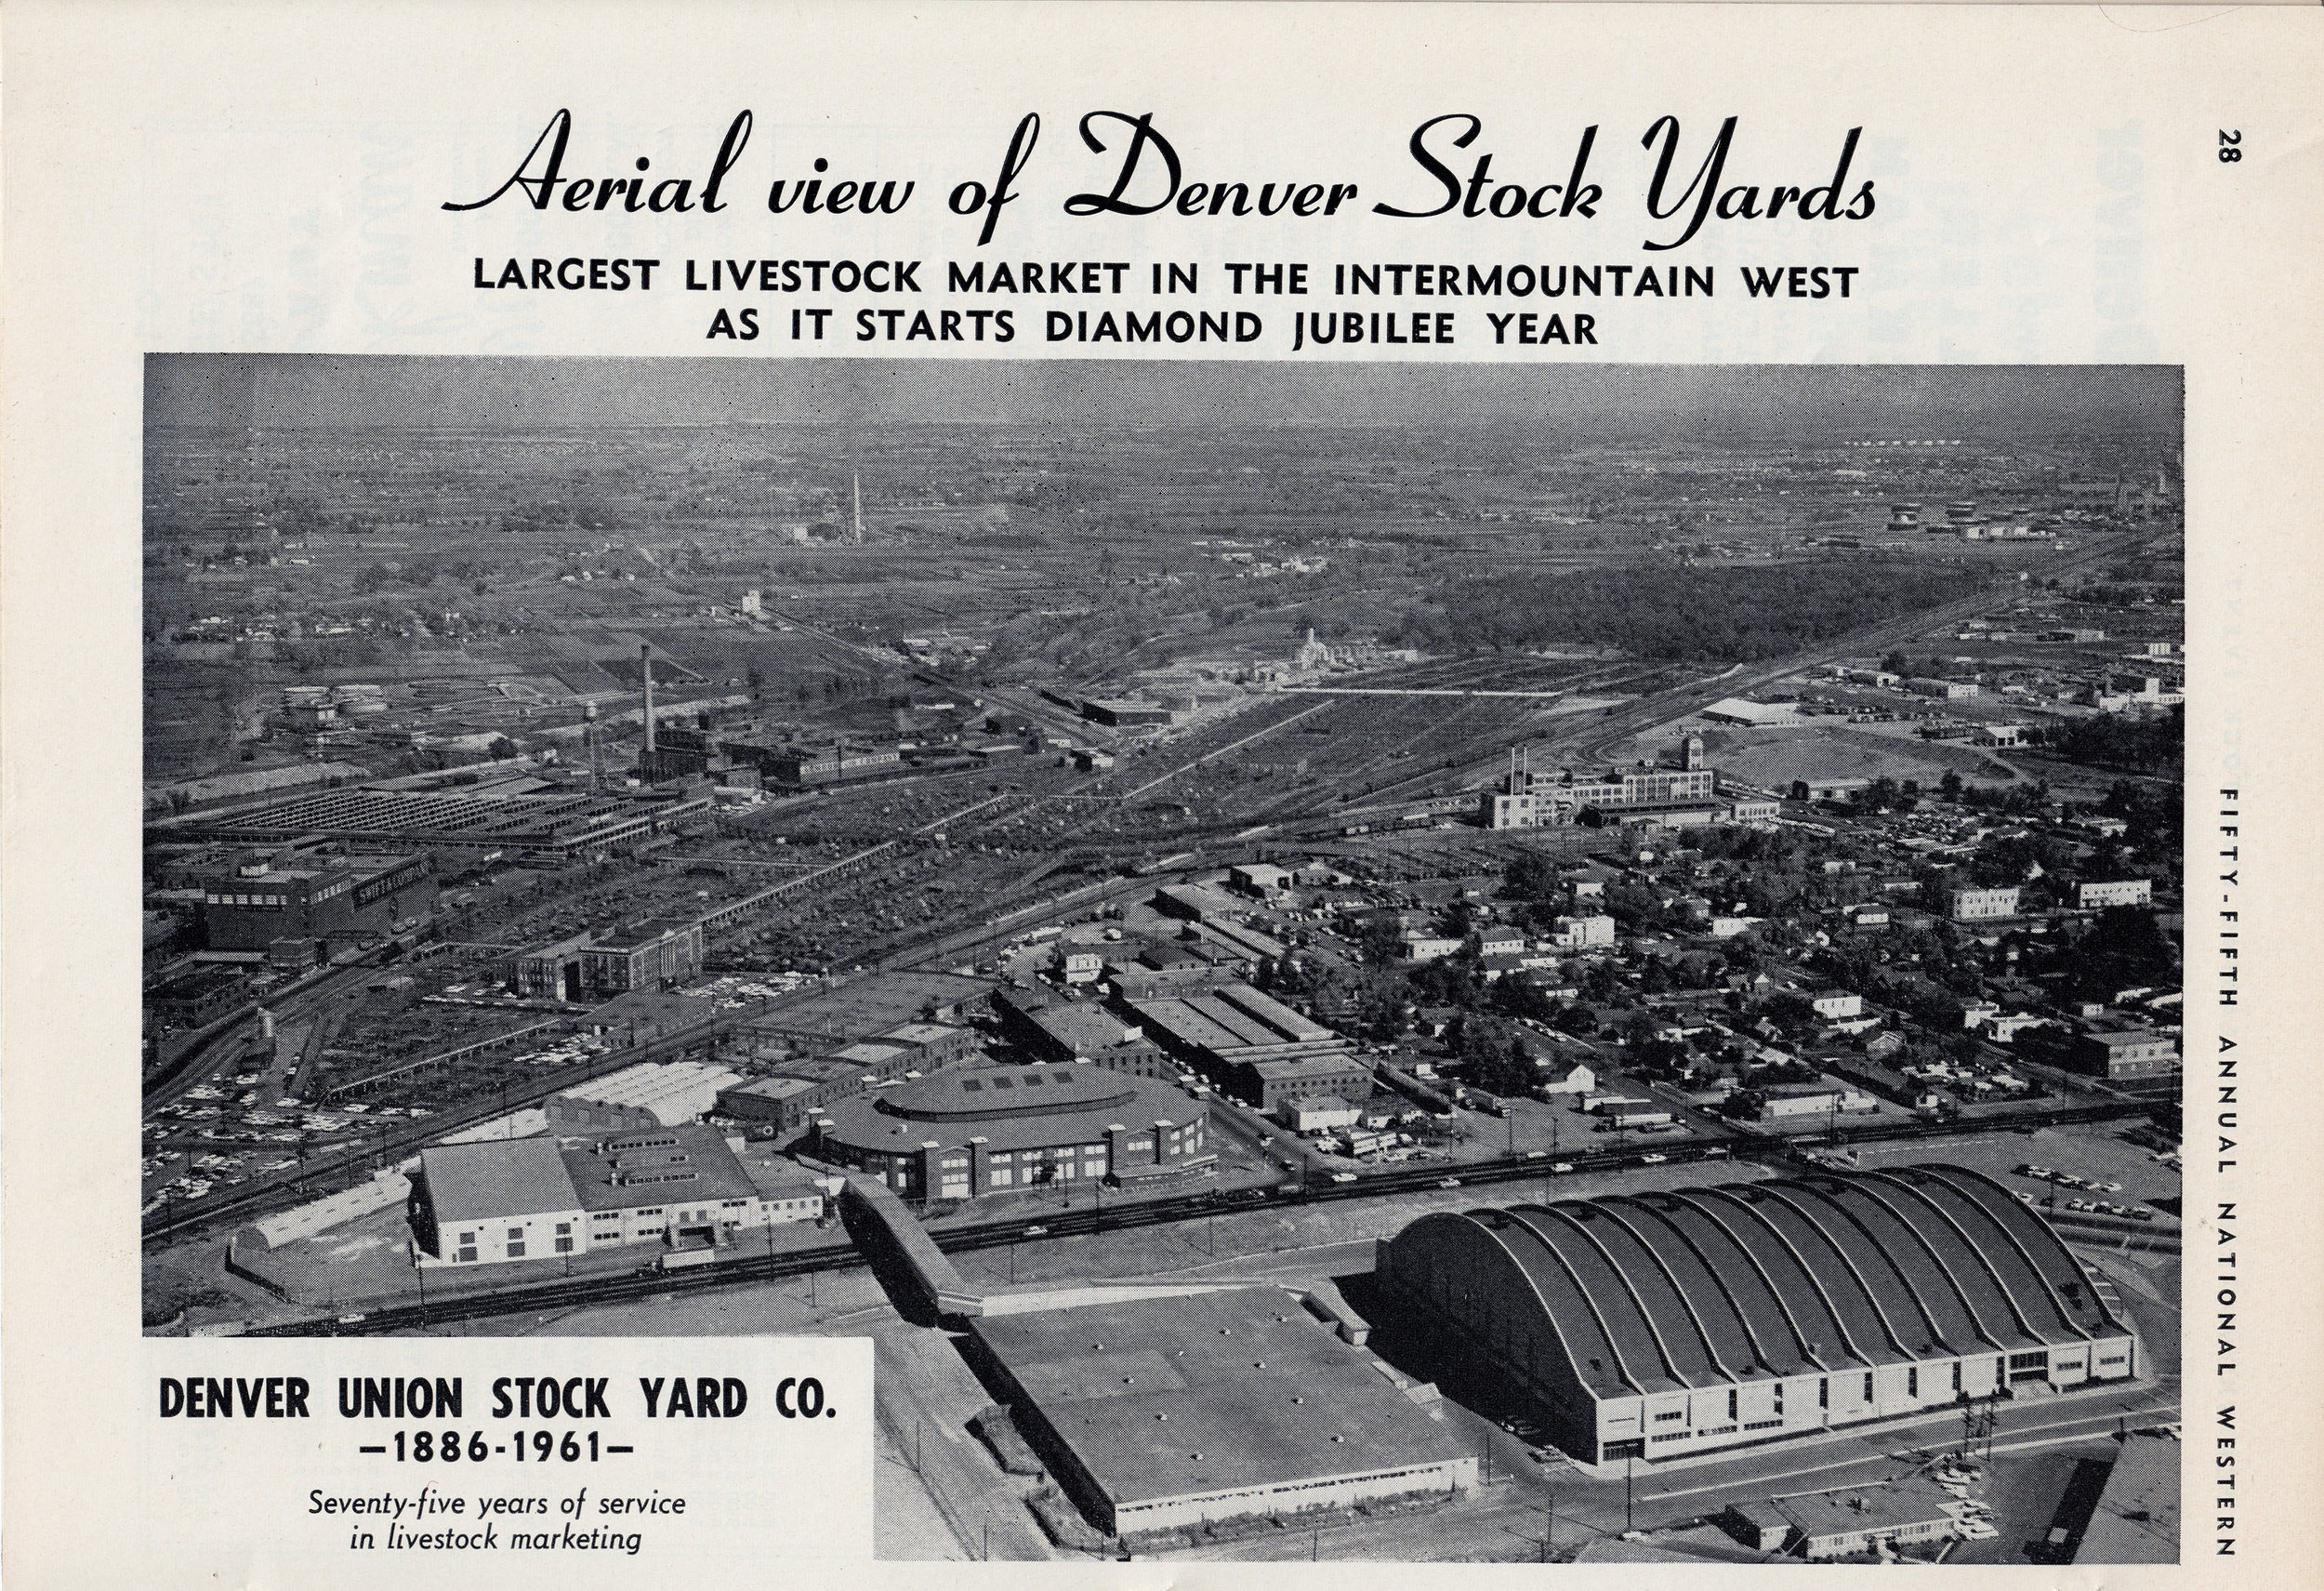 From the 1961 National Western Stock Show program, an aerial map of the Denver Union Stockyards as they looked in 1961.